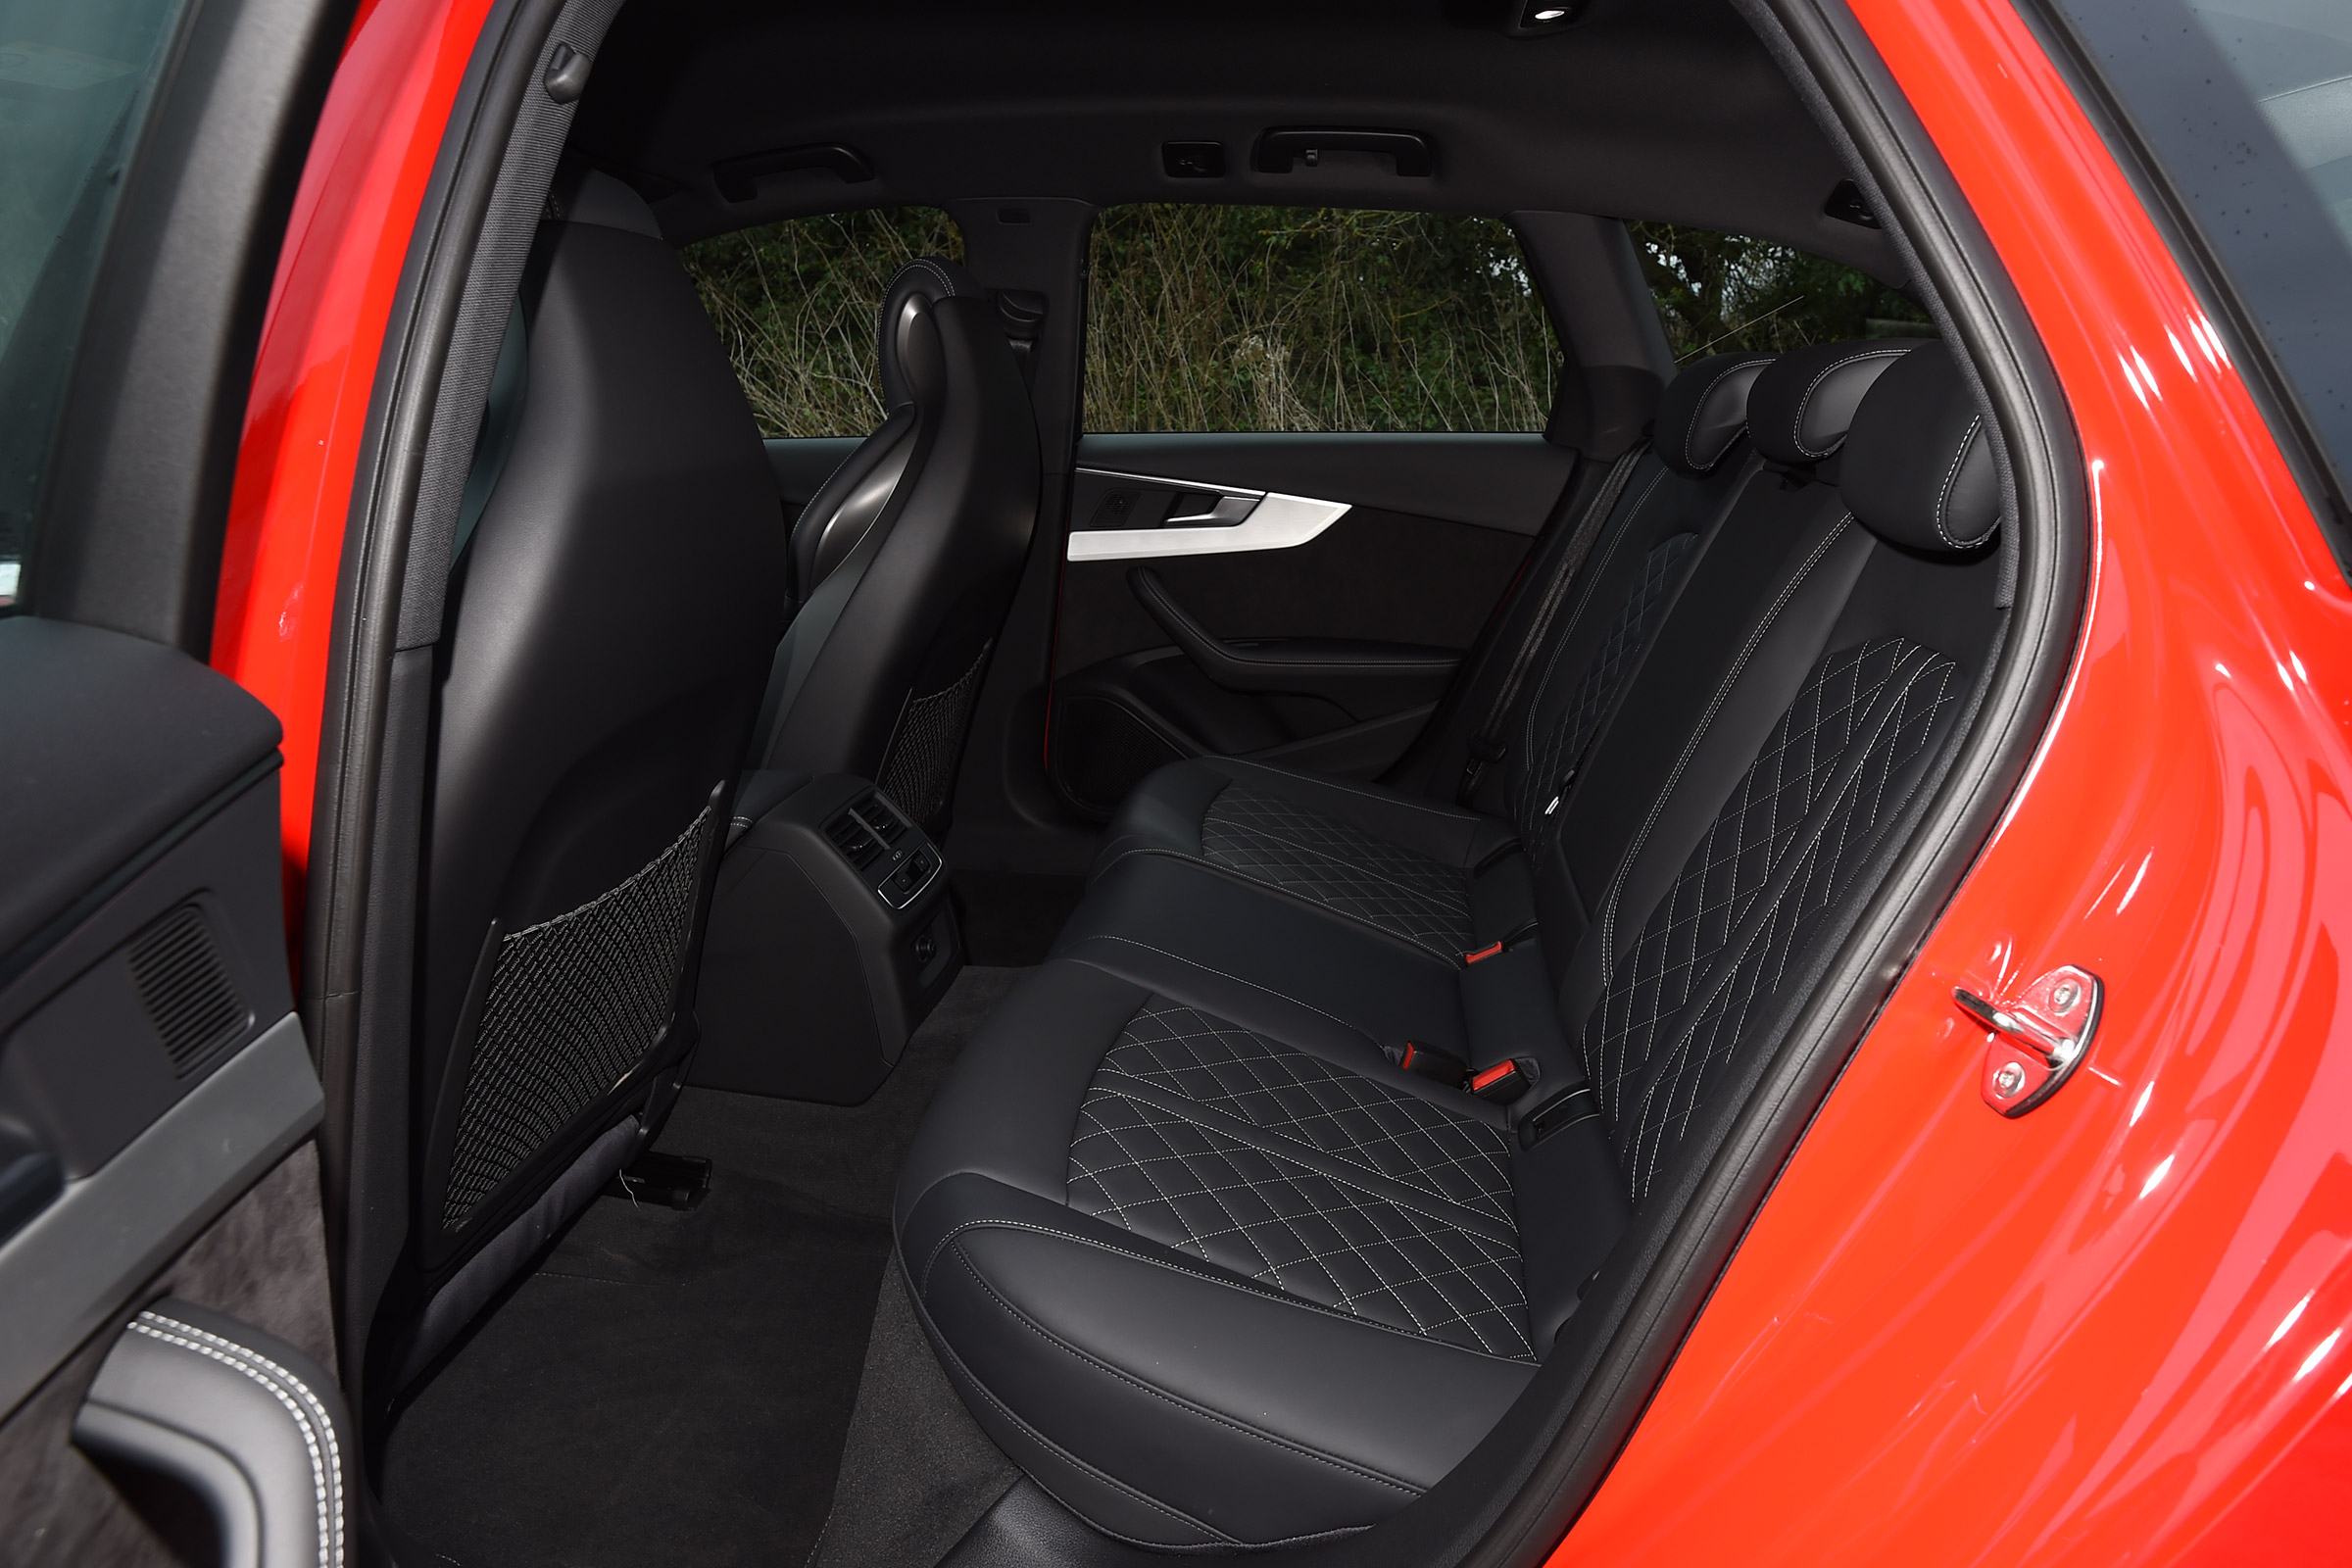 2017 Audi S4 Avant Interior Seats Rear (View 11 of 17)